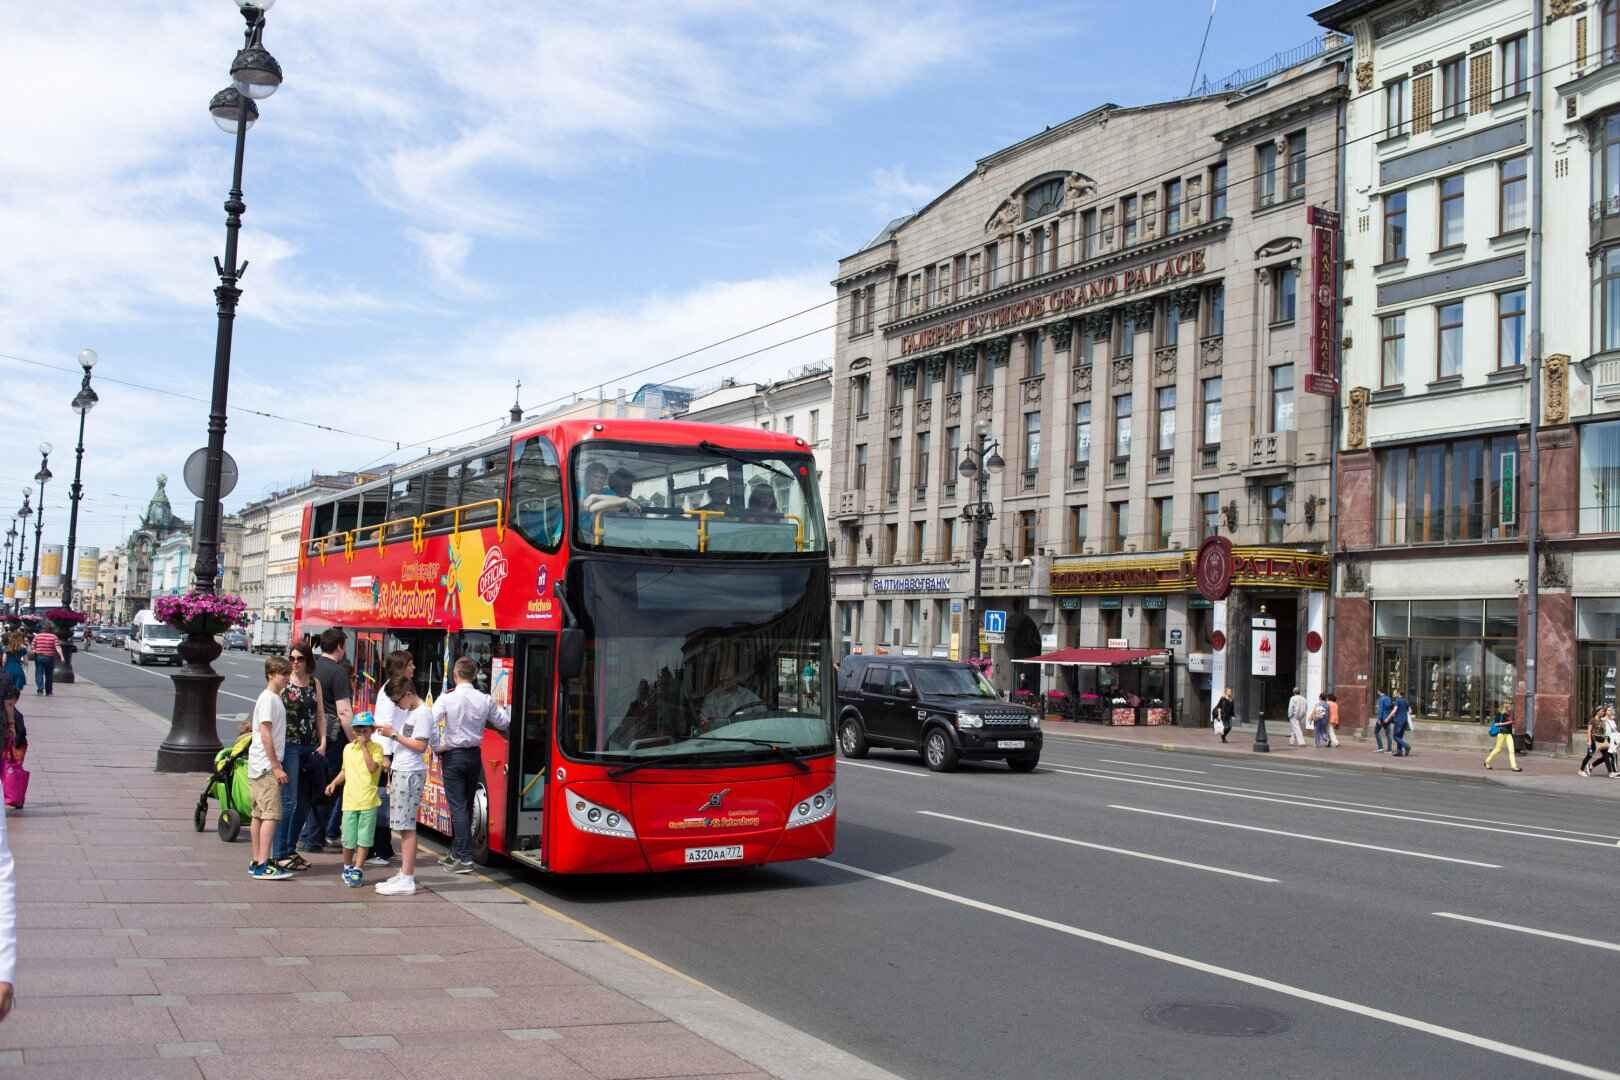 : Sightseeing tour across St. Petersburg by bus | Buses City Sightseeing | Map St. Petersburg City Pass, Фото 8